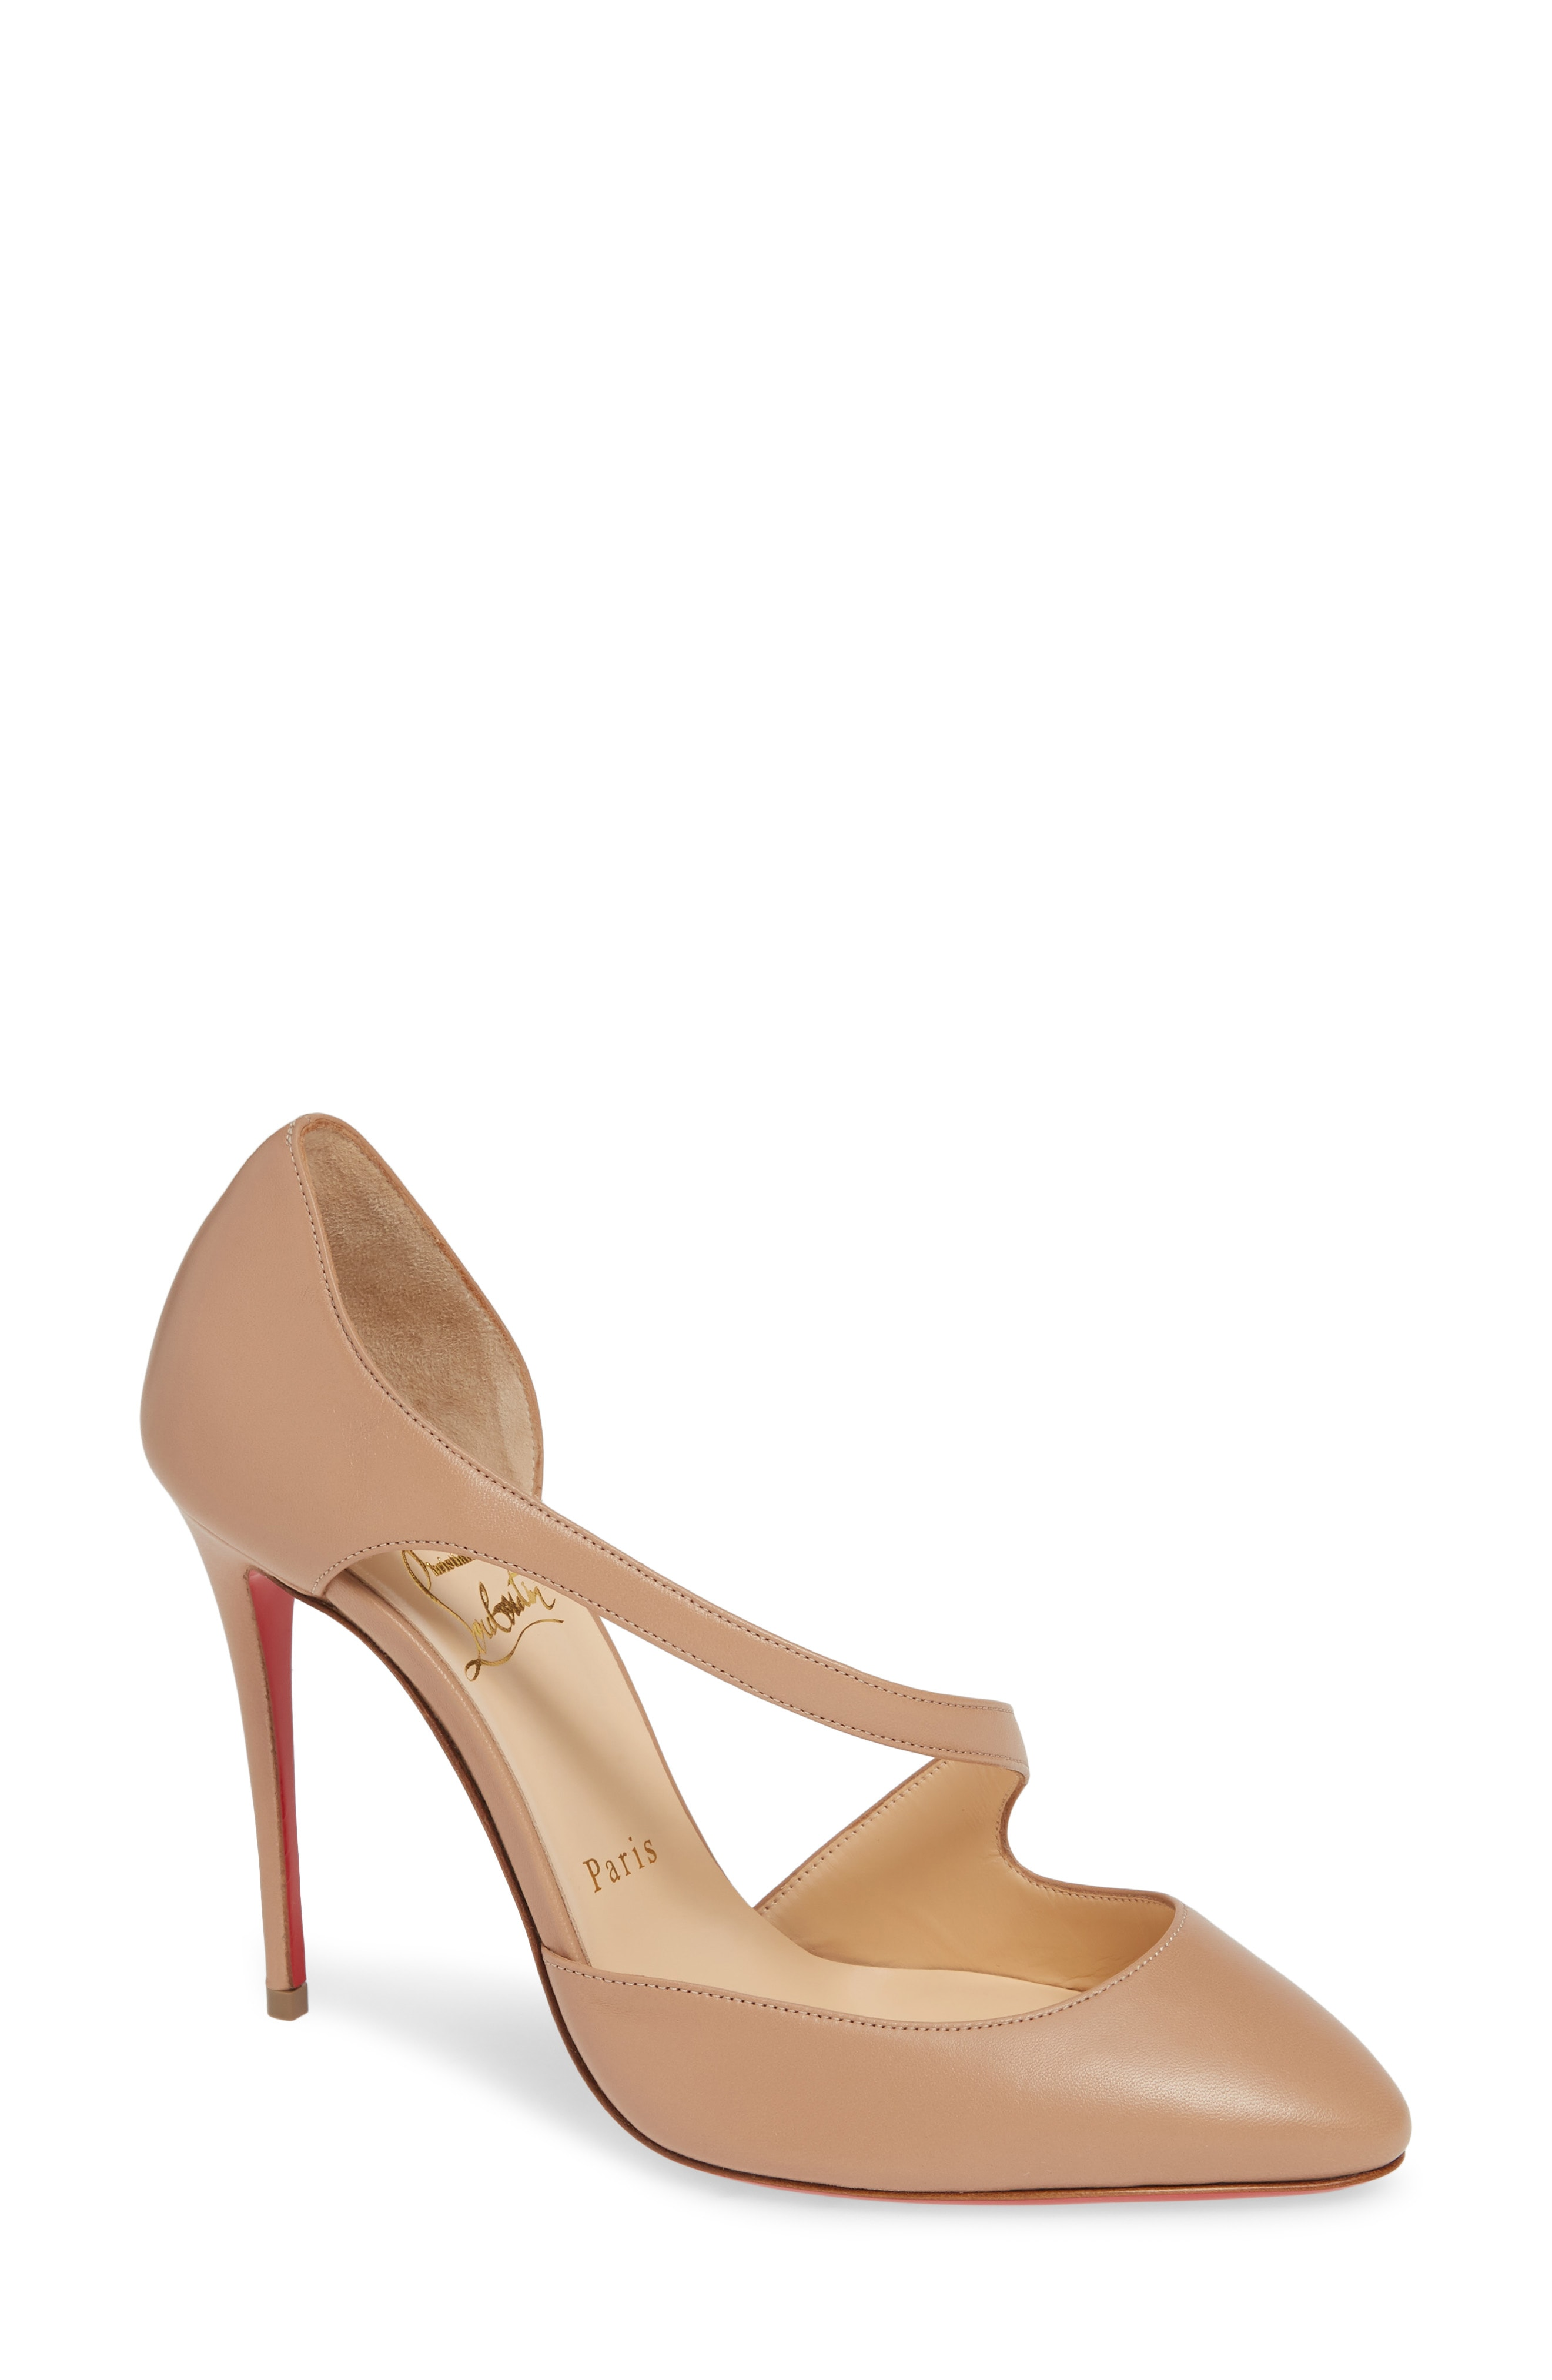 Christian Louboutin Catchy One Strappy d'Orsay Pump (Women)